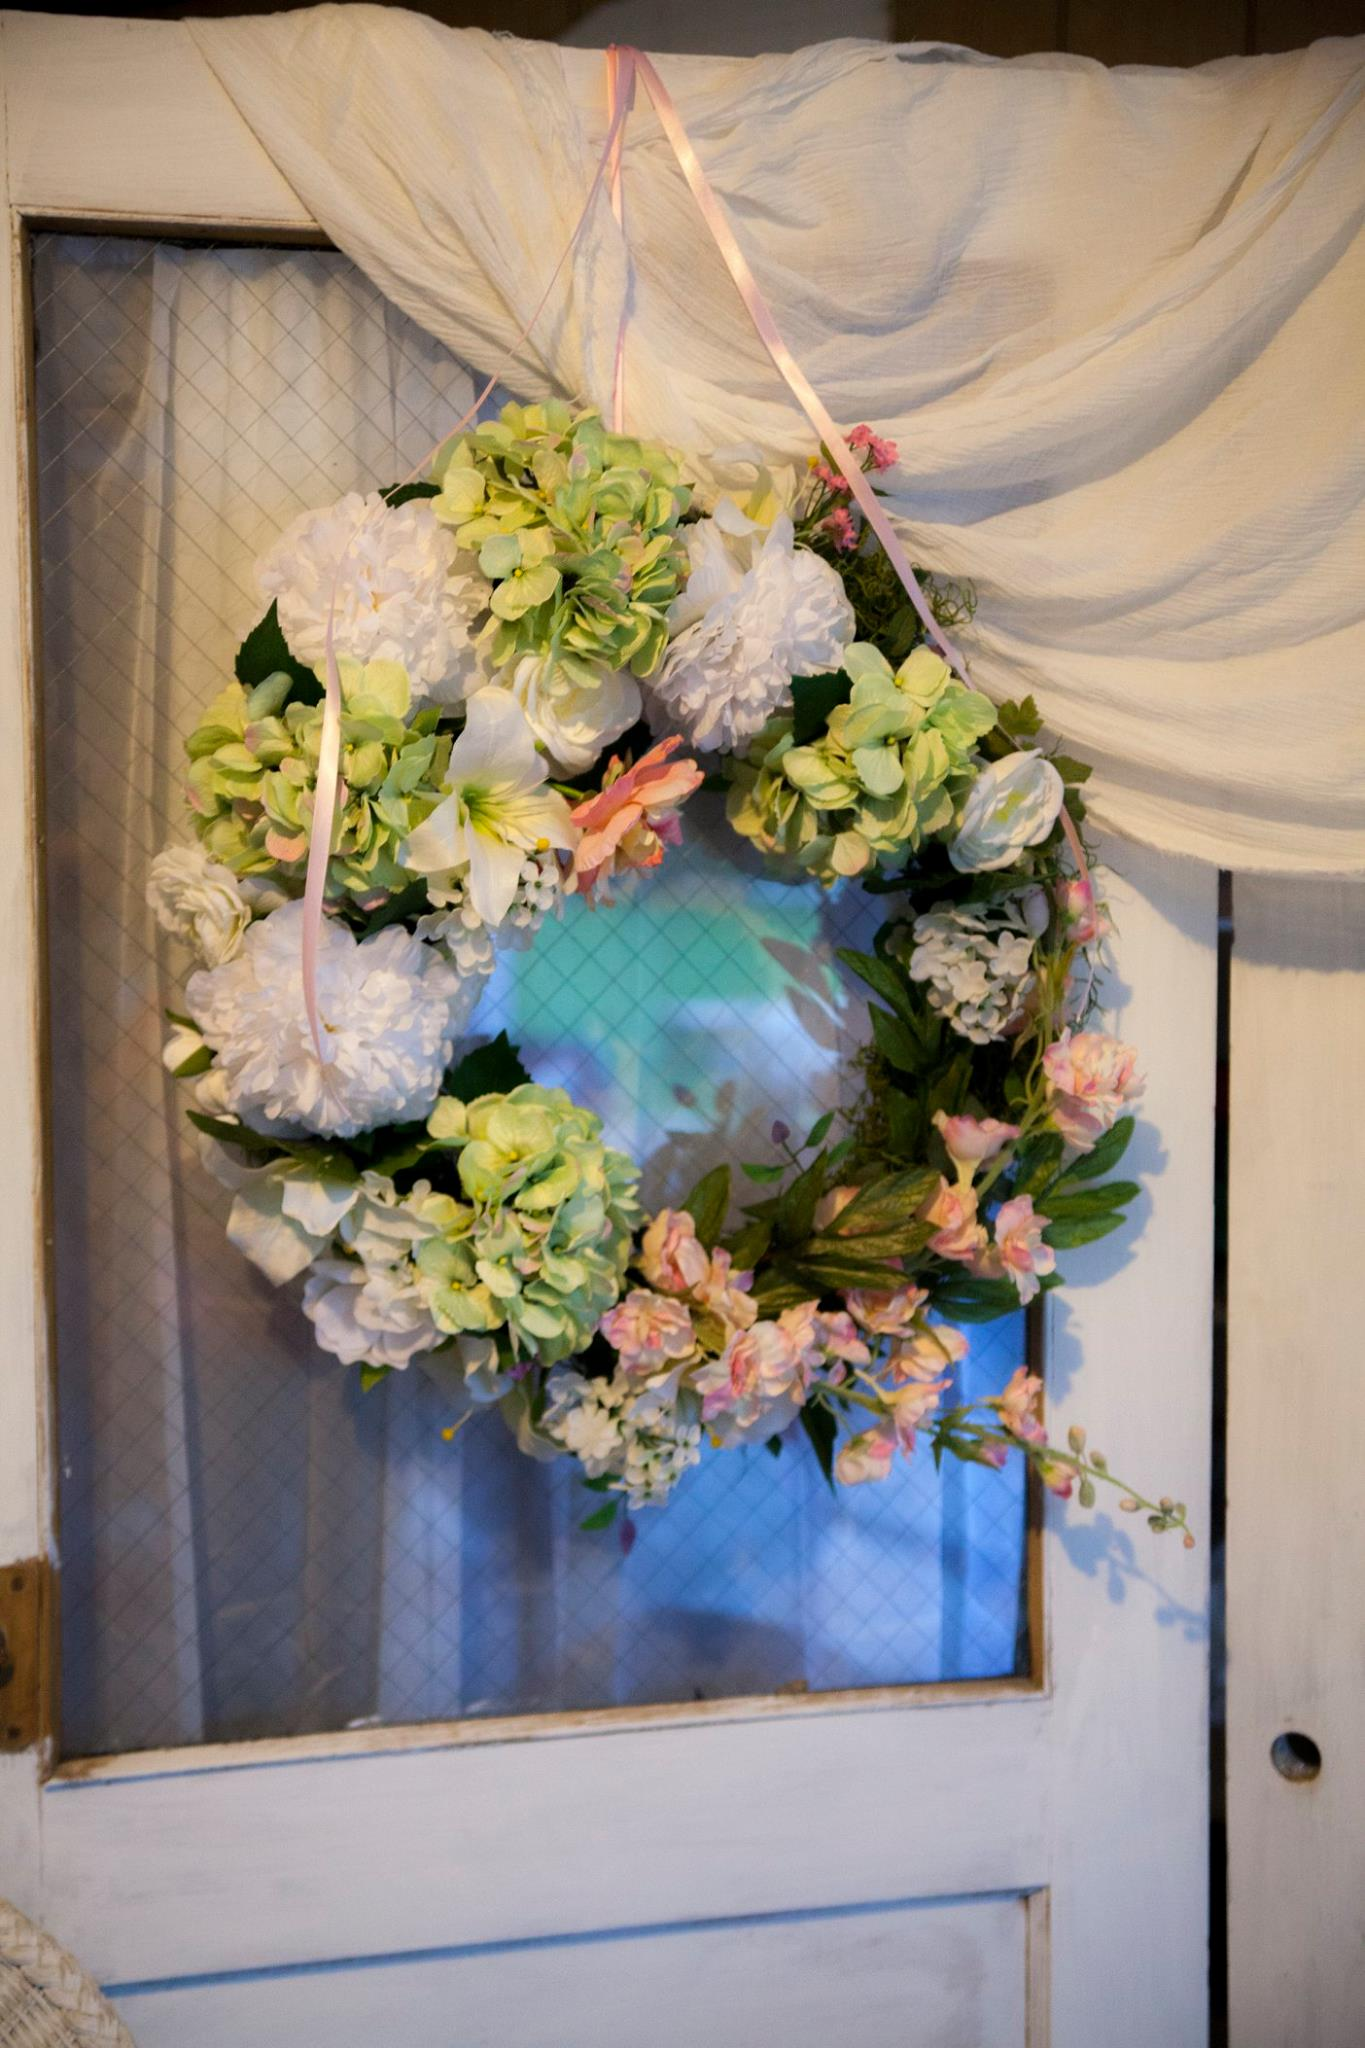 Wreath available for rental.